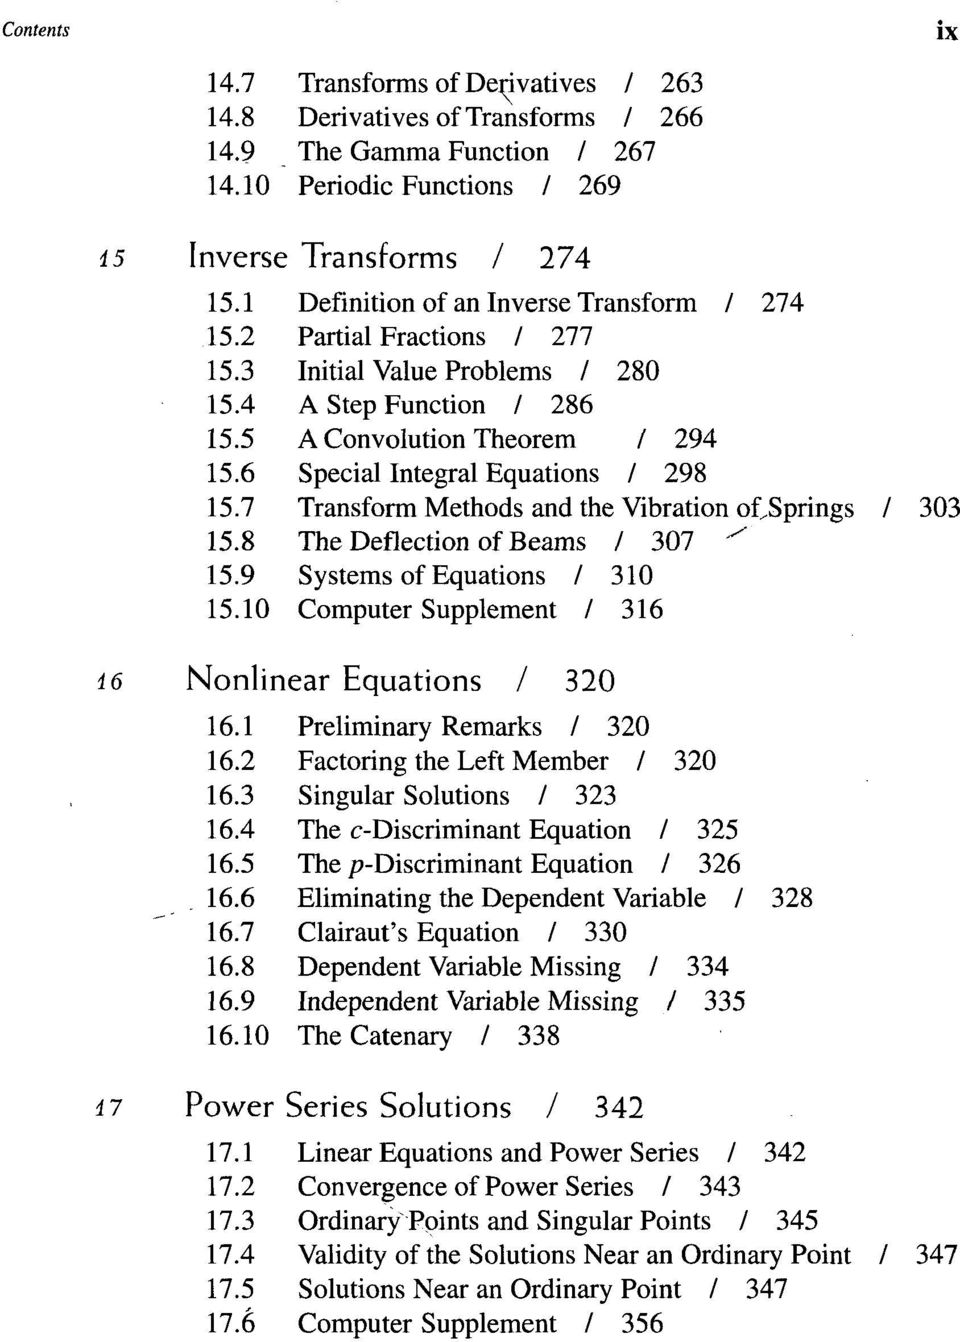 "6 Special Integral Equations / 298 15.7 Transform Methods and the Vibration offsprings / 303 15.8 The Deflection of Beams / 307 """" 15.9 Systems of Equations / 310 15."